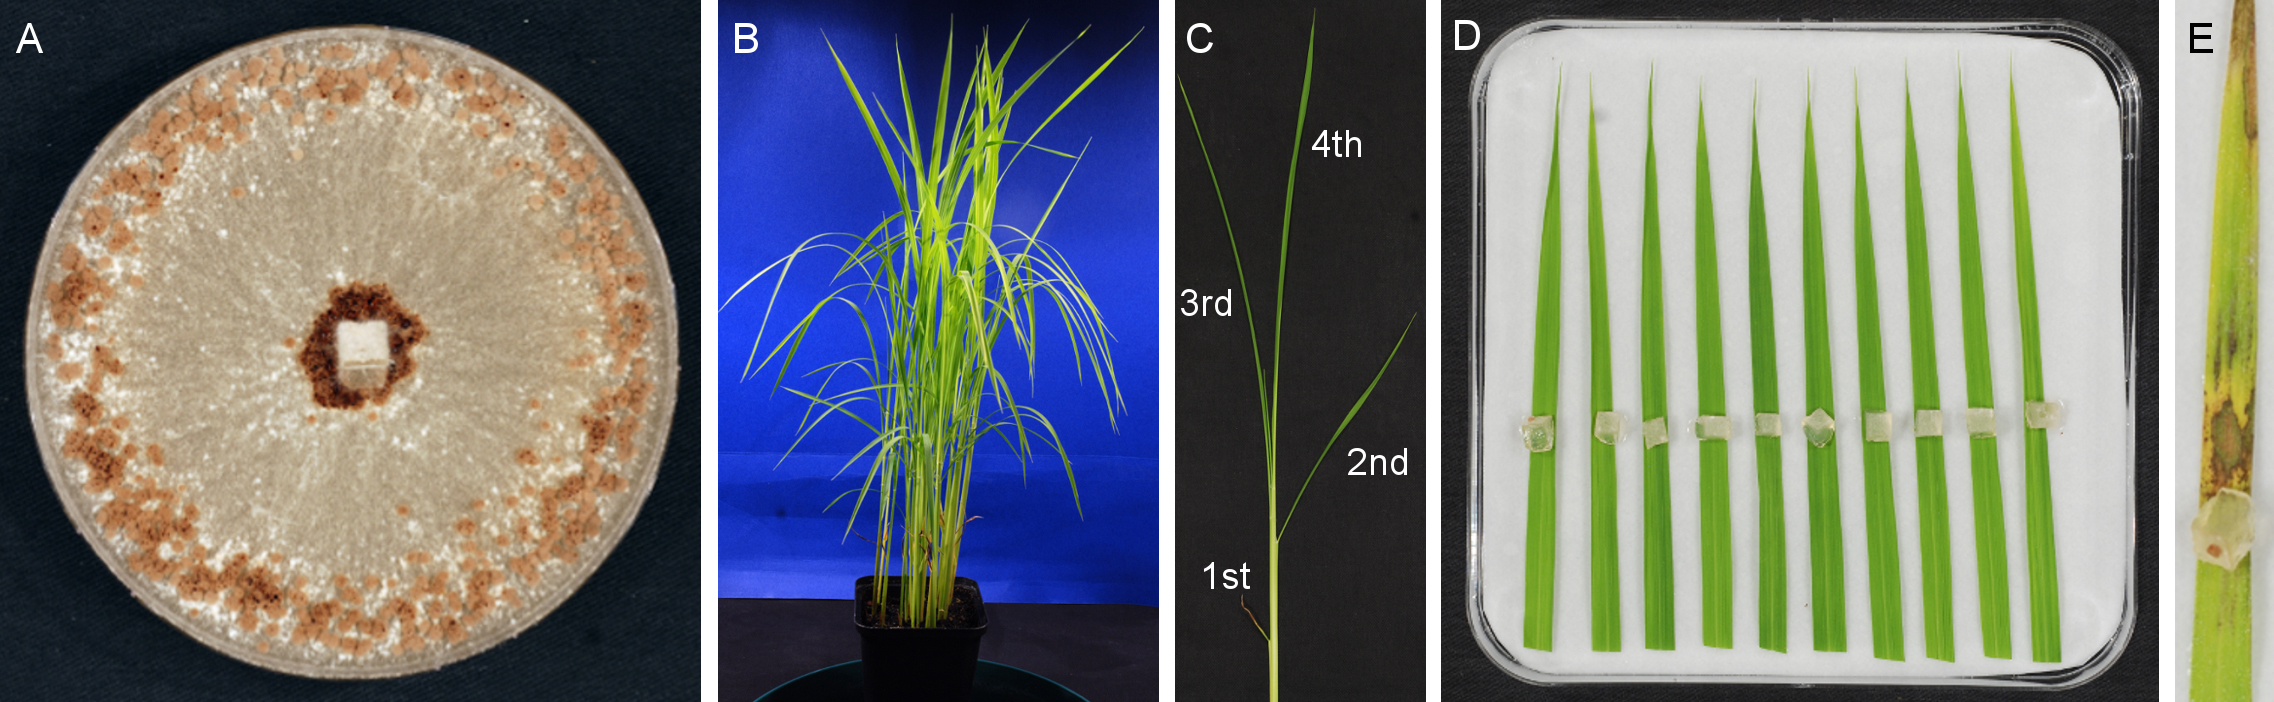 Inoculation Of Rice With Different Pathogens Sheath